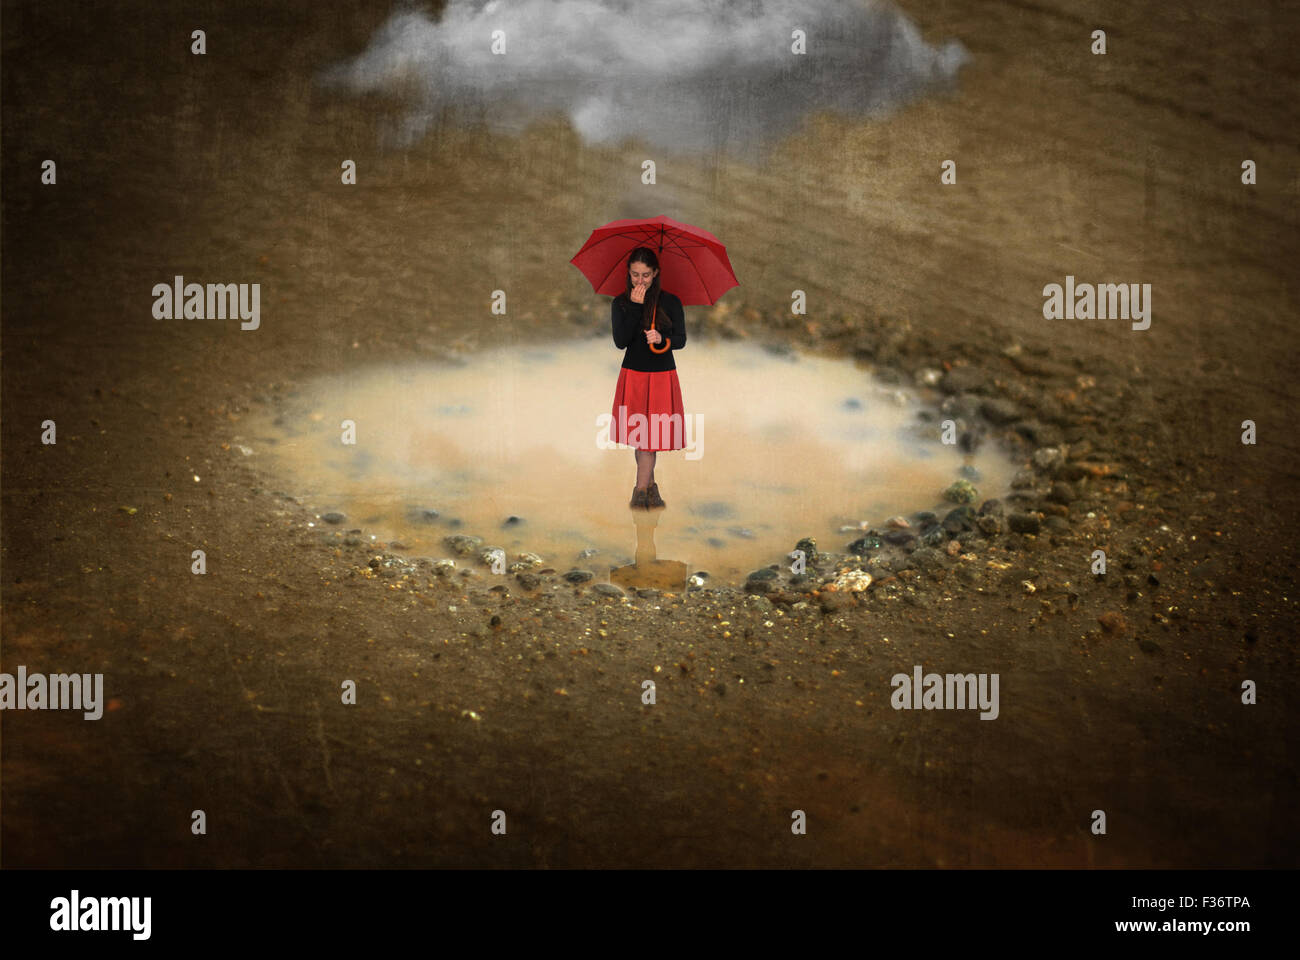 Miniature girl standing in a puddle with a red umbrella with a big cloud - Stock Image